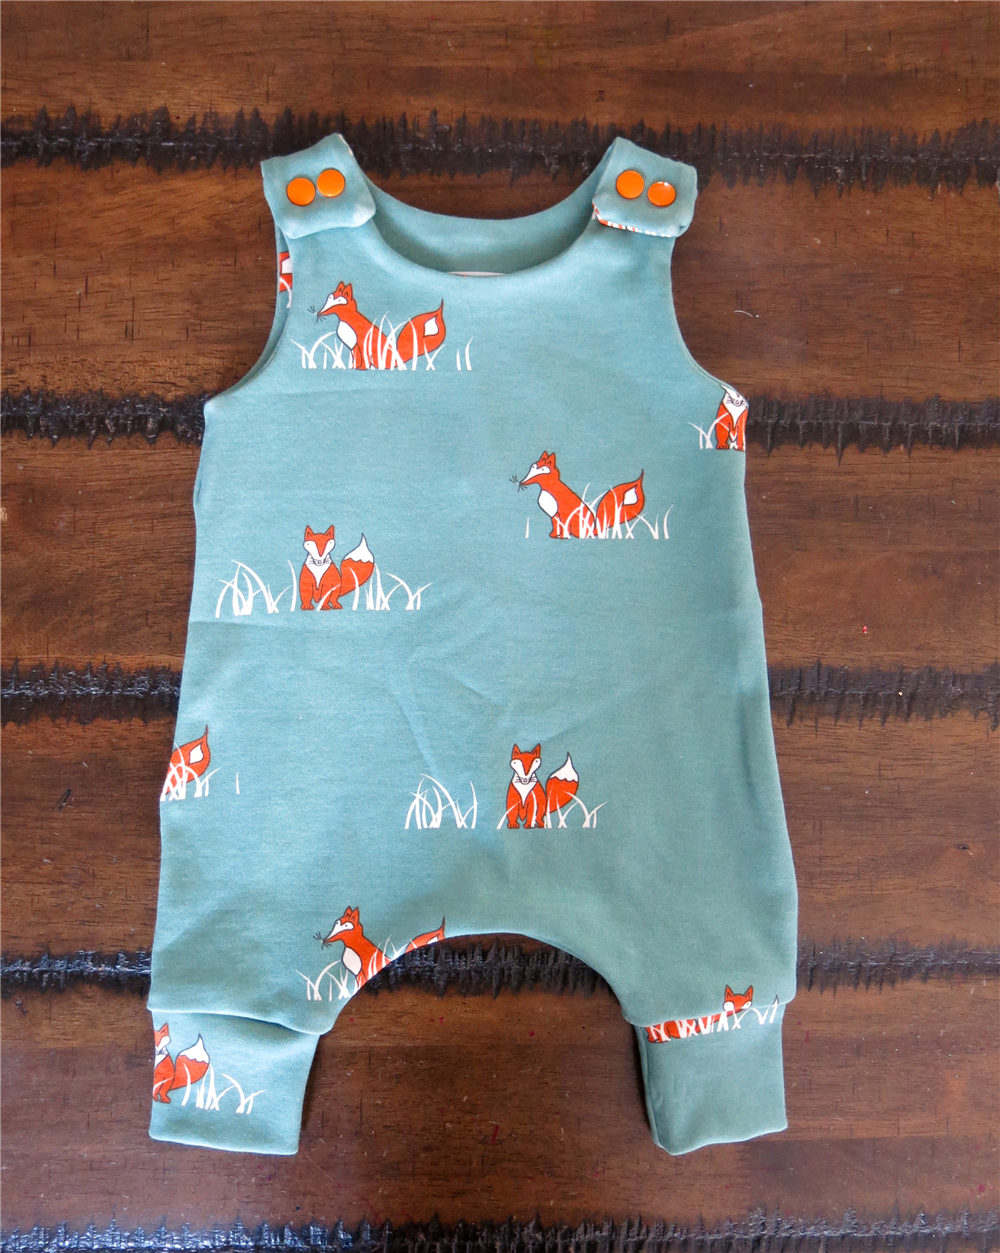 0-24M Newborn Boy Rompers Toddler Girl Cotton Clothing Summer Unisex Jumpsuit Infant Playsuit Cute Fox Cartoon Baby Clothes Blue summer 2017 baby kids girl boy infant summer sleeveless romper harlan jumpsuit clothes outfits 0 24m